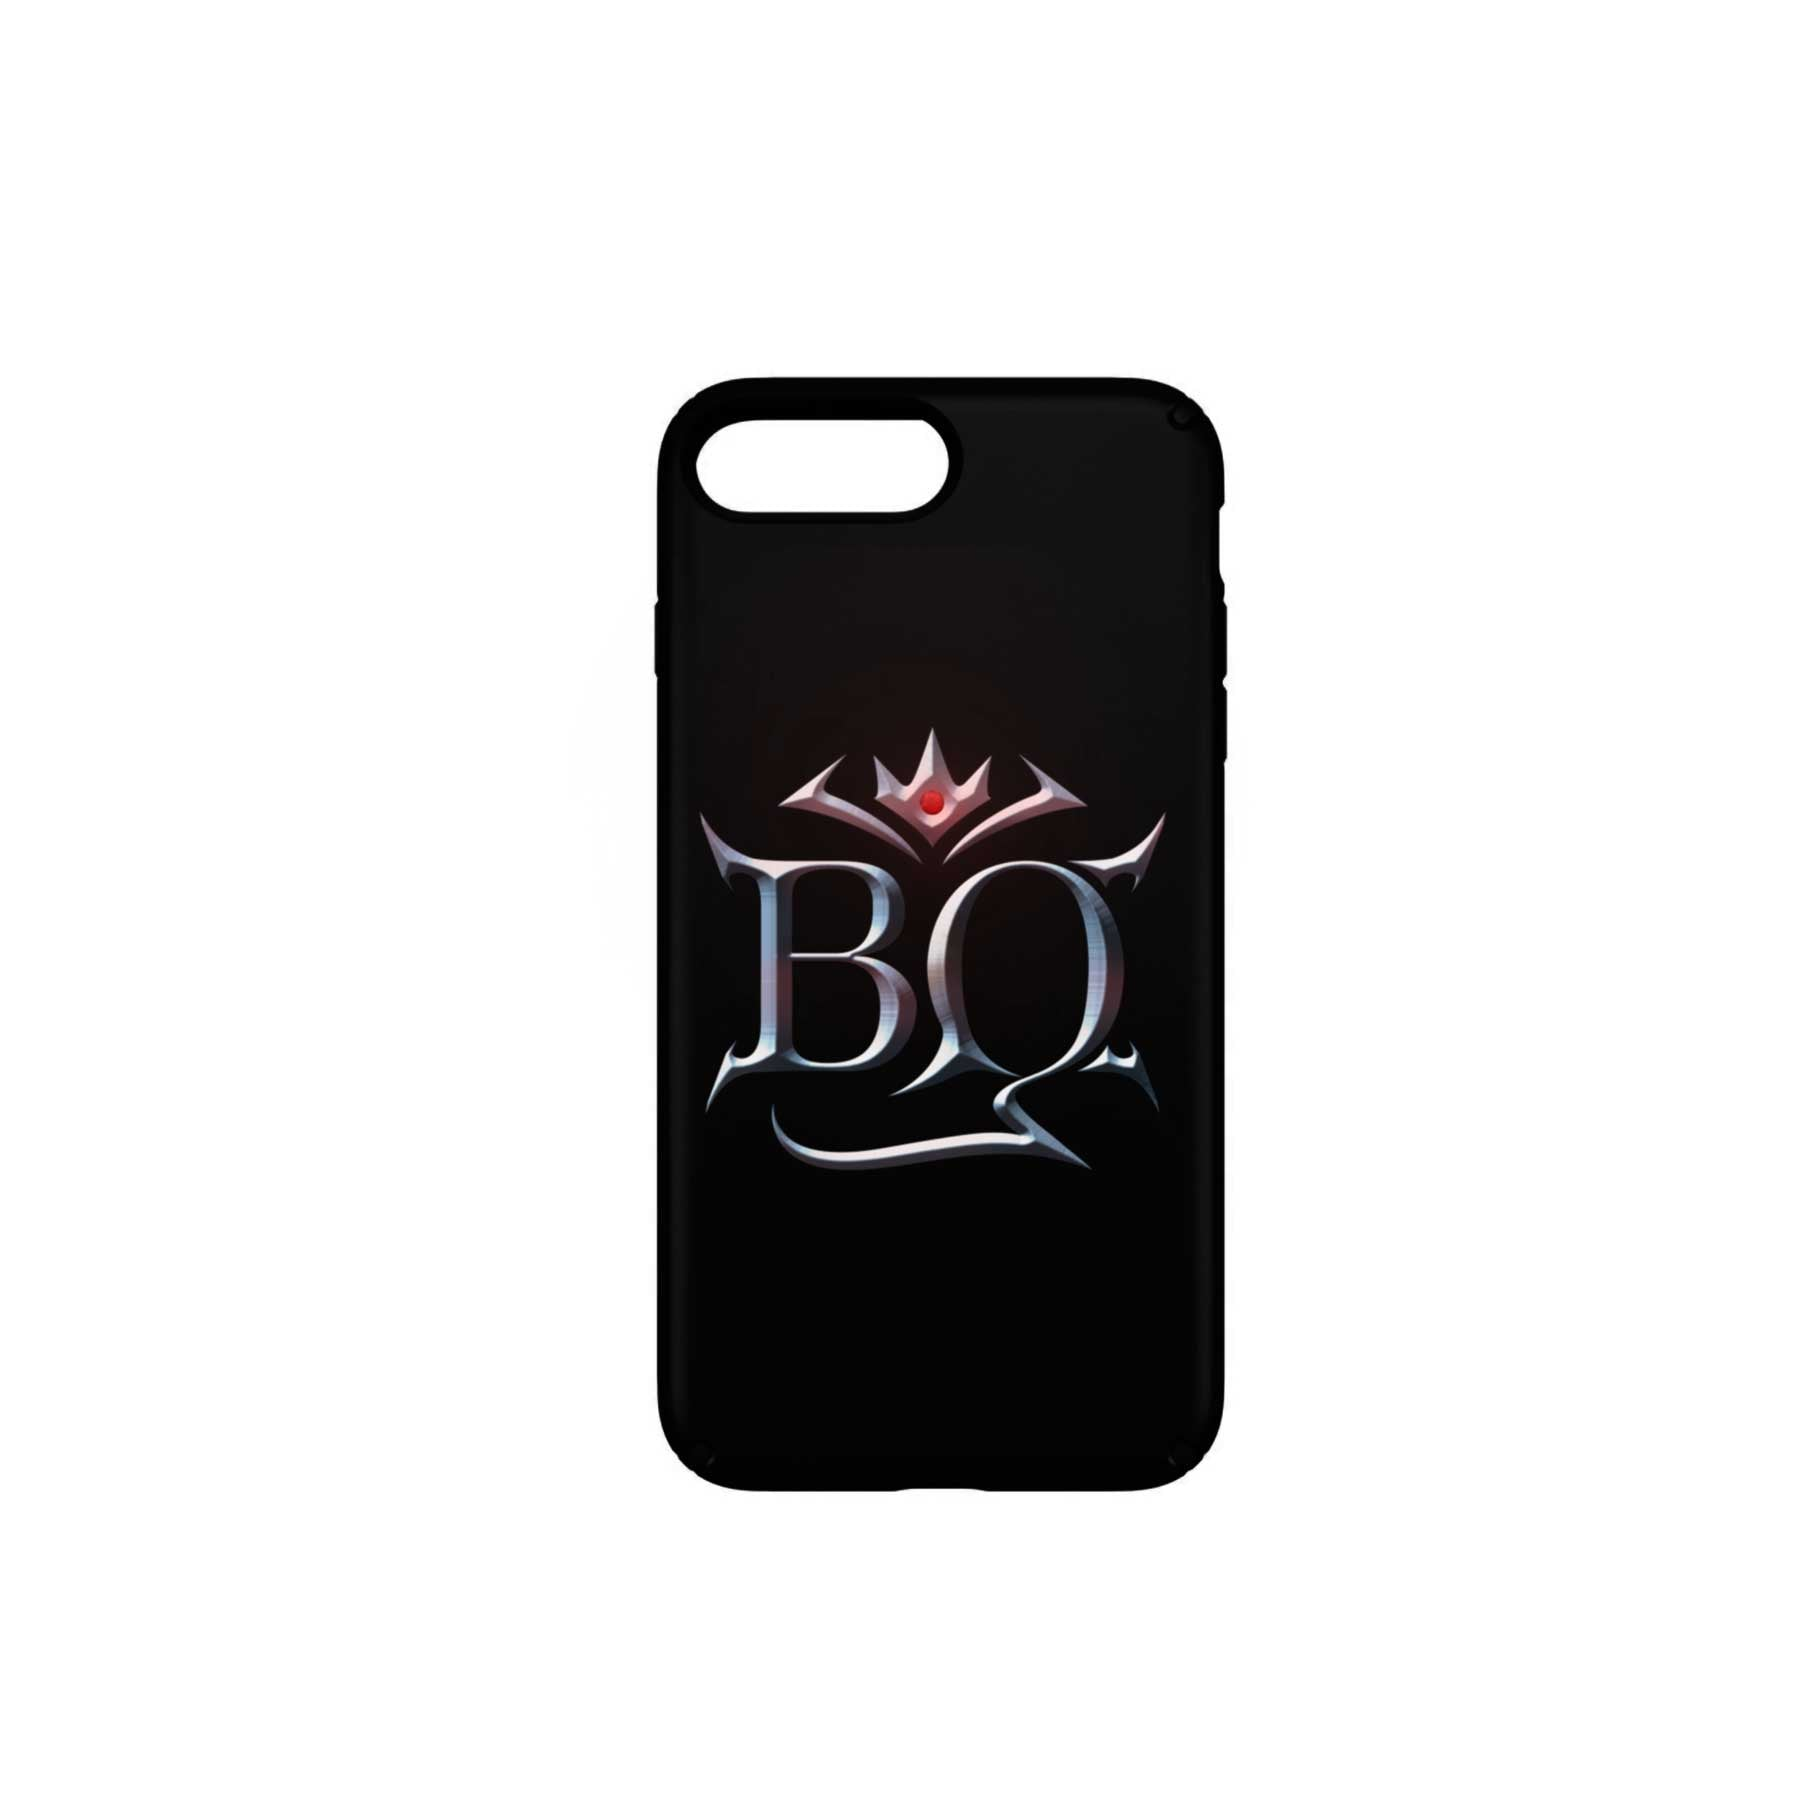 Bedlam Queen - Funda Móvil Black BQ - Merchanfy Imprime tus camisetas